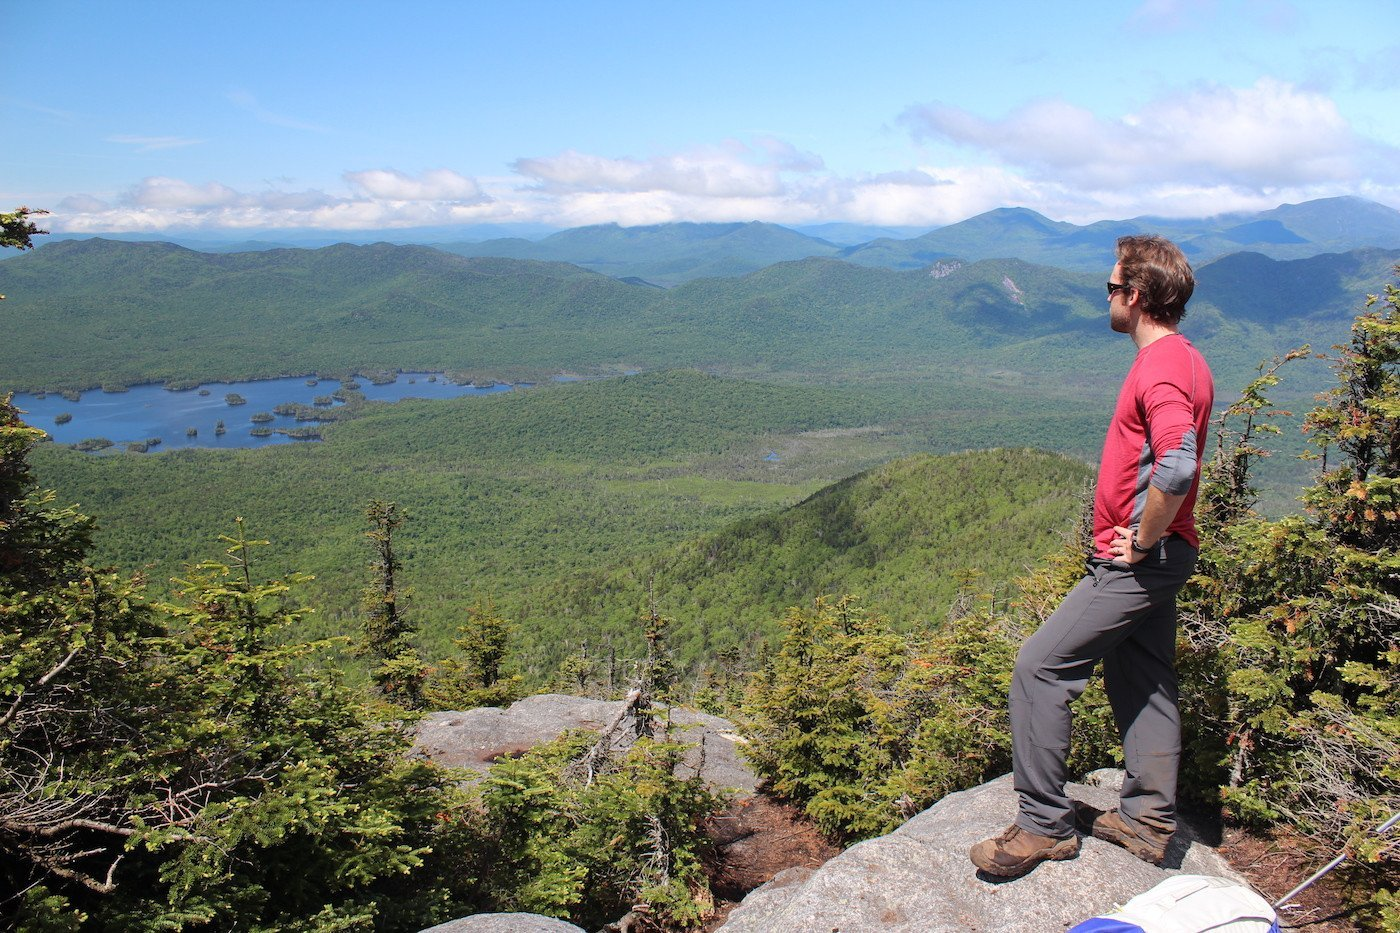 Macomb, South Dix, and Grace Peak | Pure Adirondacks